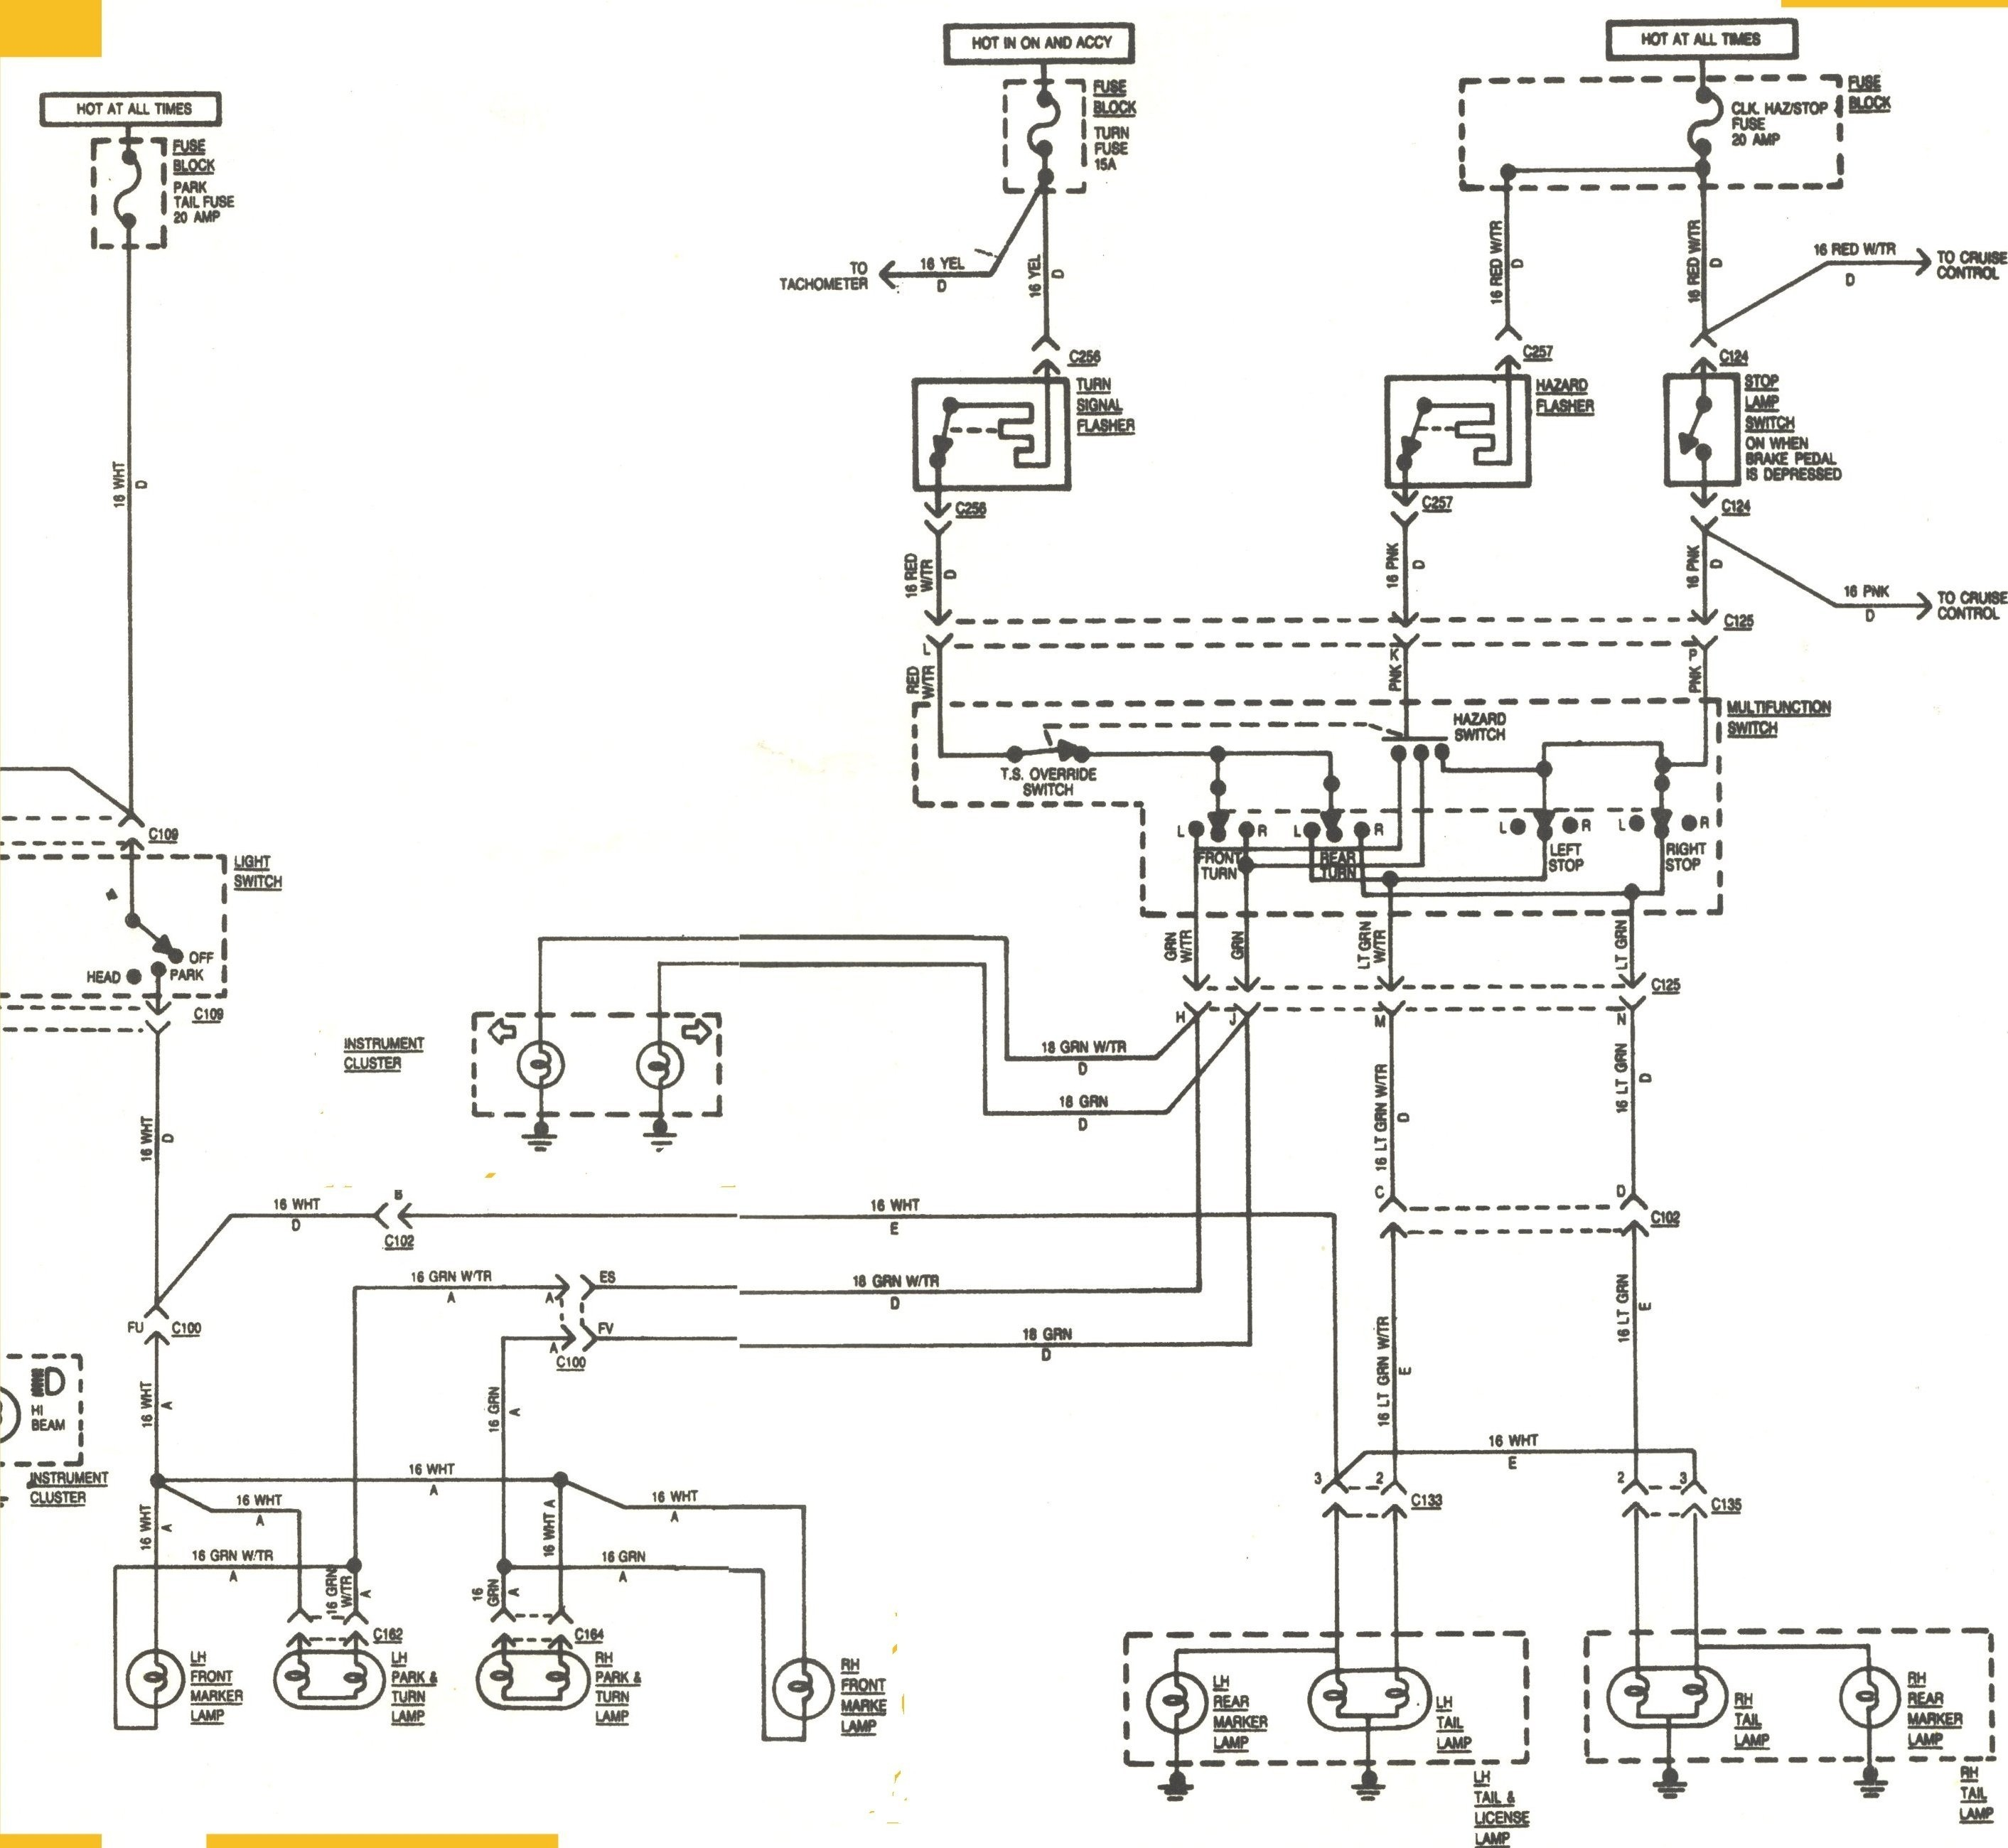 Turn Signal Wire Diagram Awesome Turn Signal Switch Wiring Diagram Ideas Everything You Of Turn Signal Wire Diagram